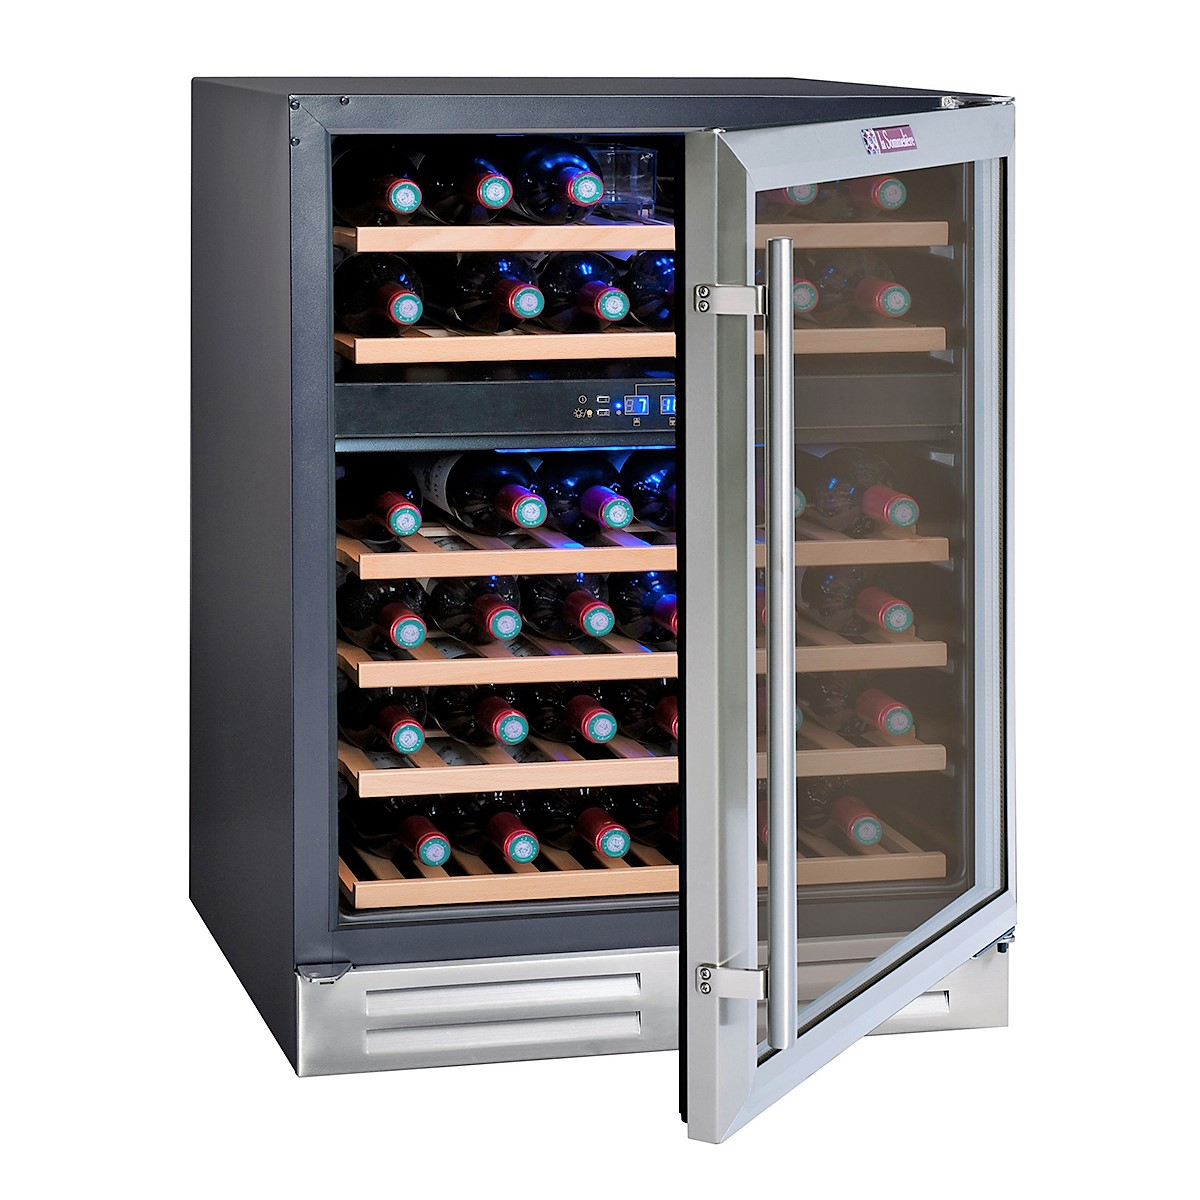 La Sommeliere - Wine Cellar Built-in CVDE46 (3)